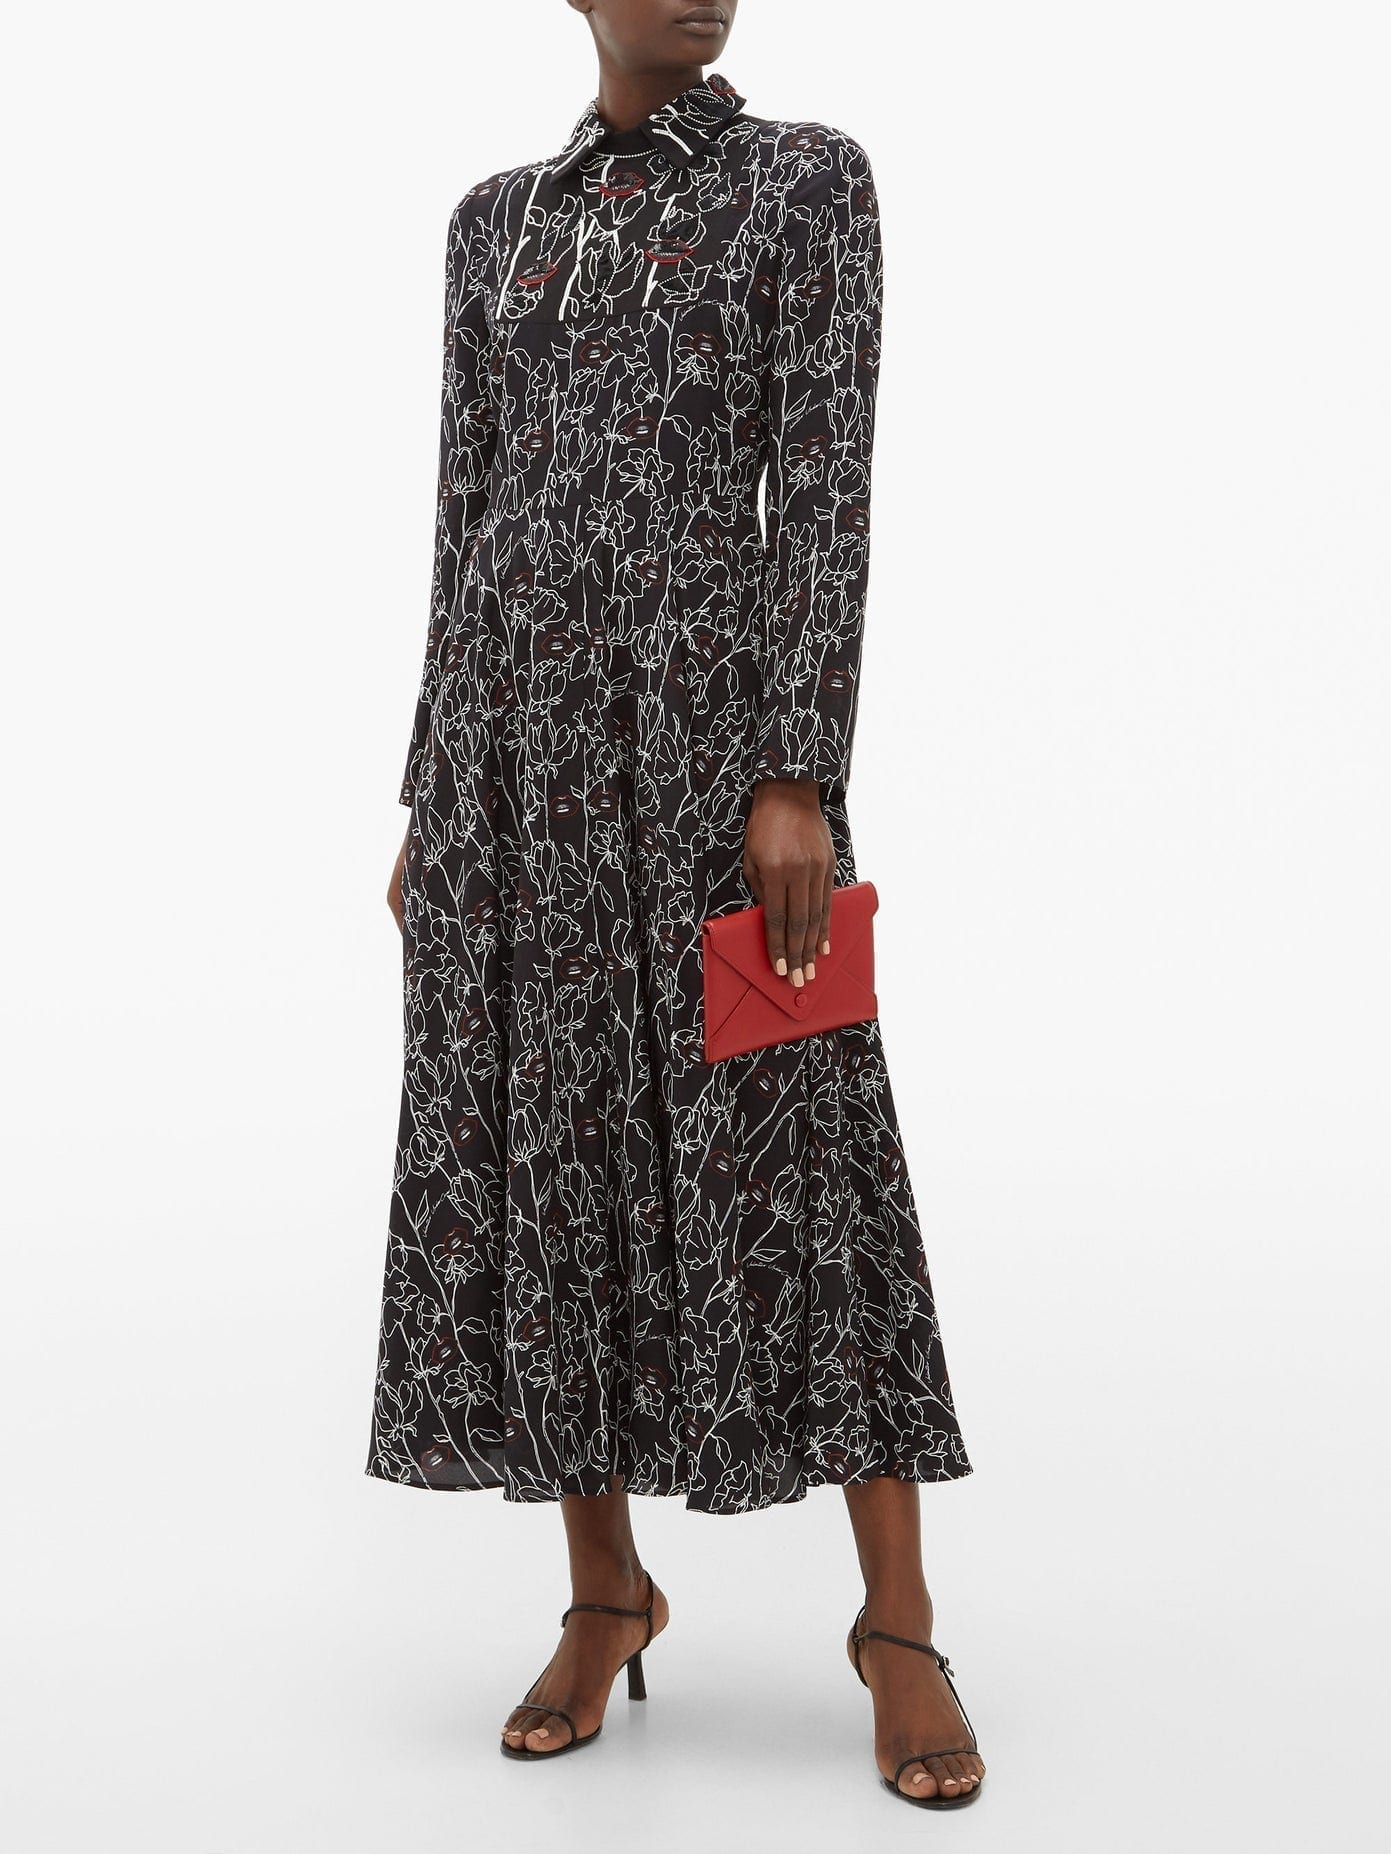 VALENTINO X Undercover Lip Floral-print Silk Dress